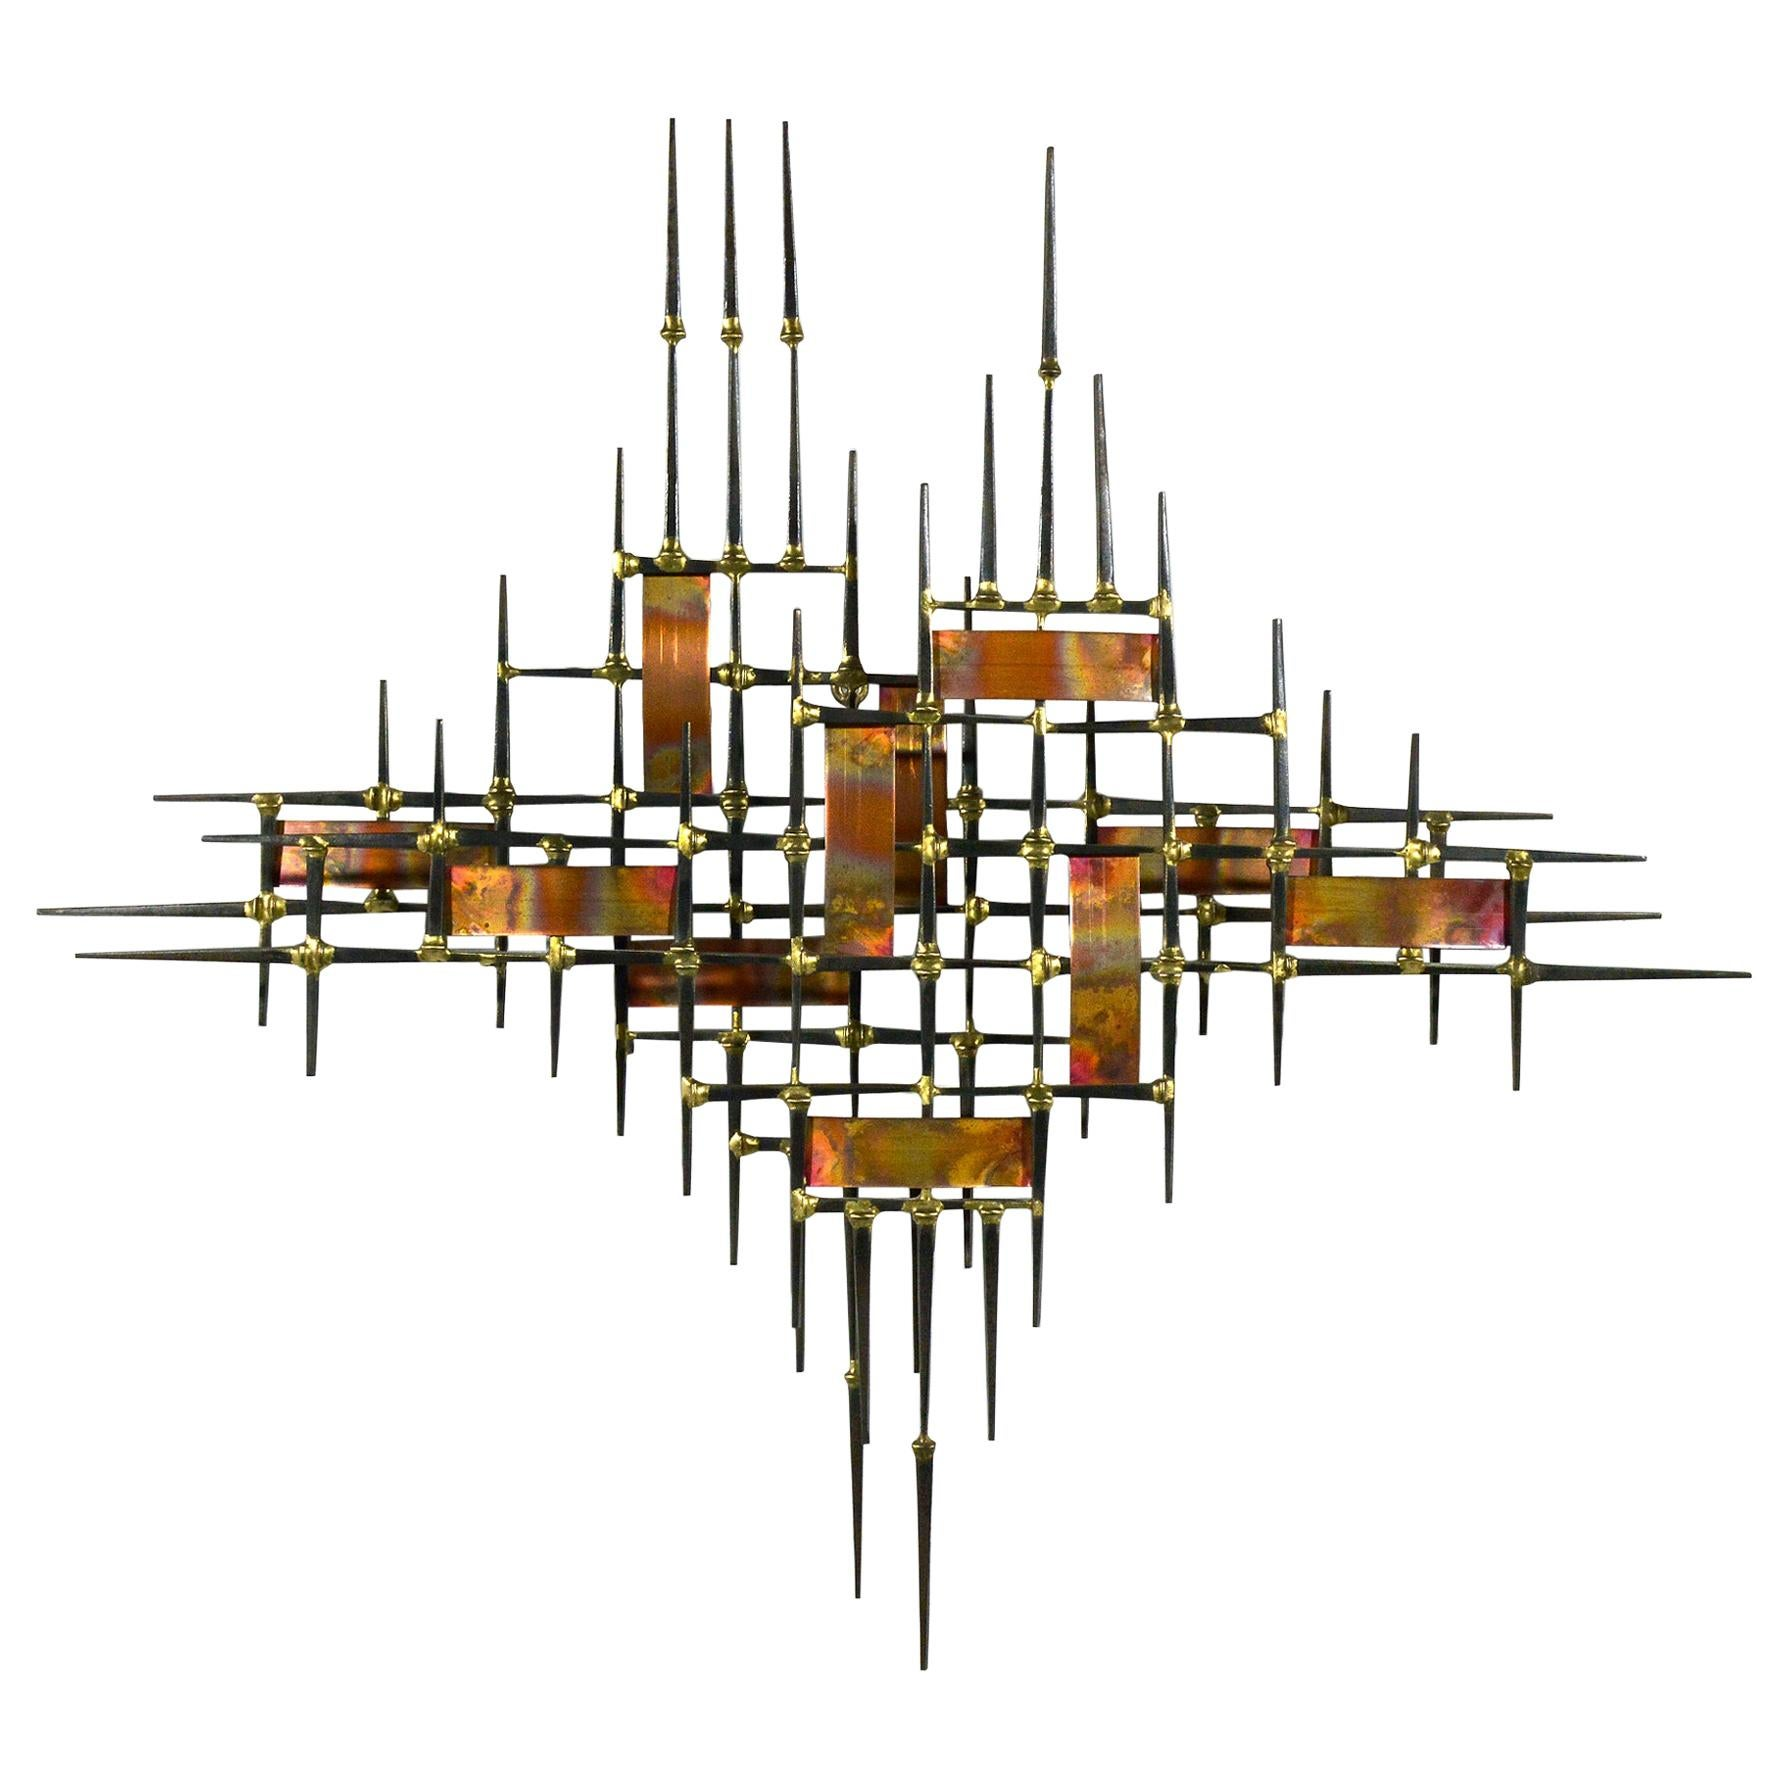 Abstract Wall Sculpture in Iron, Bronze and Copper